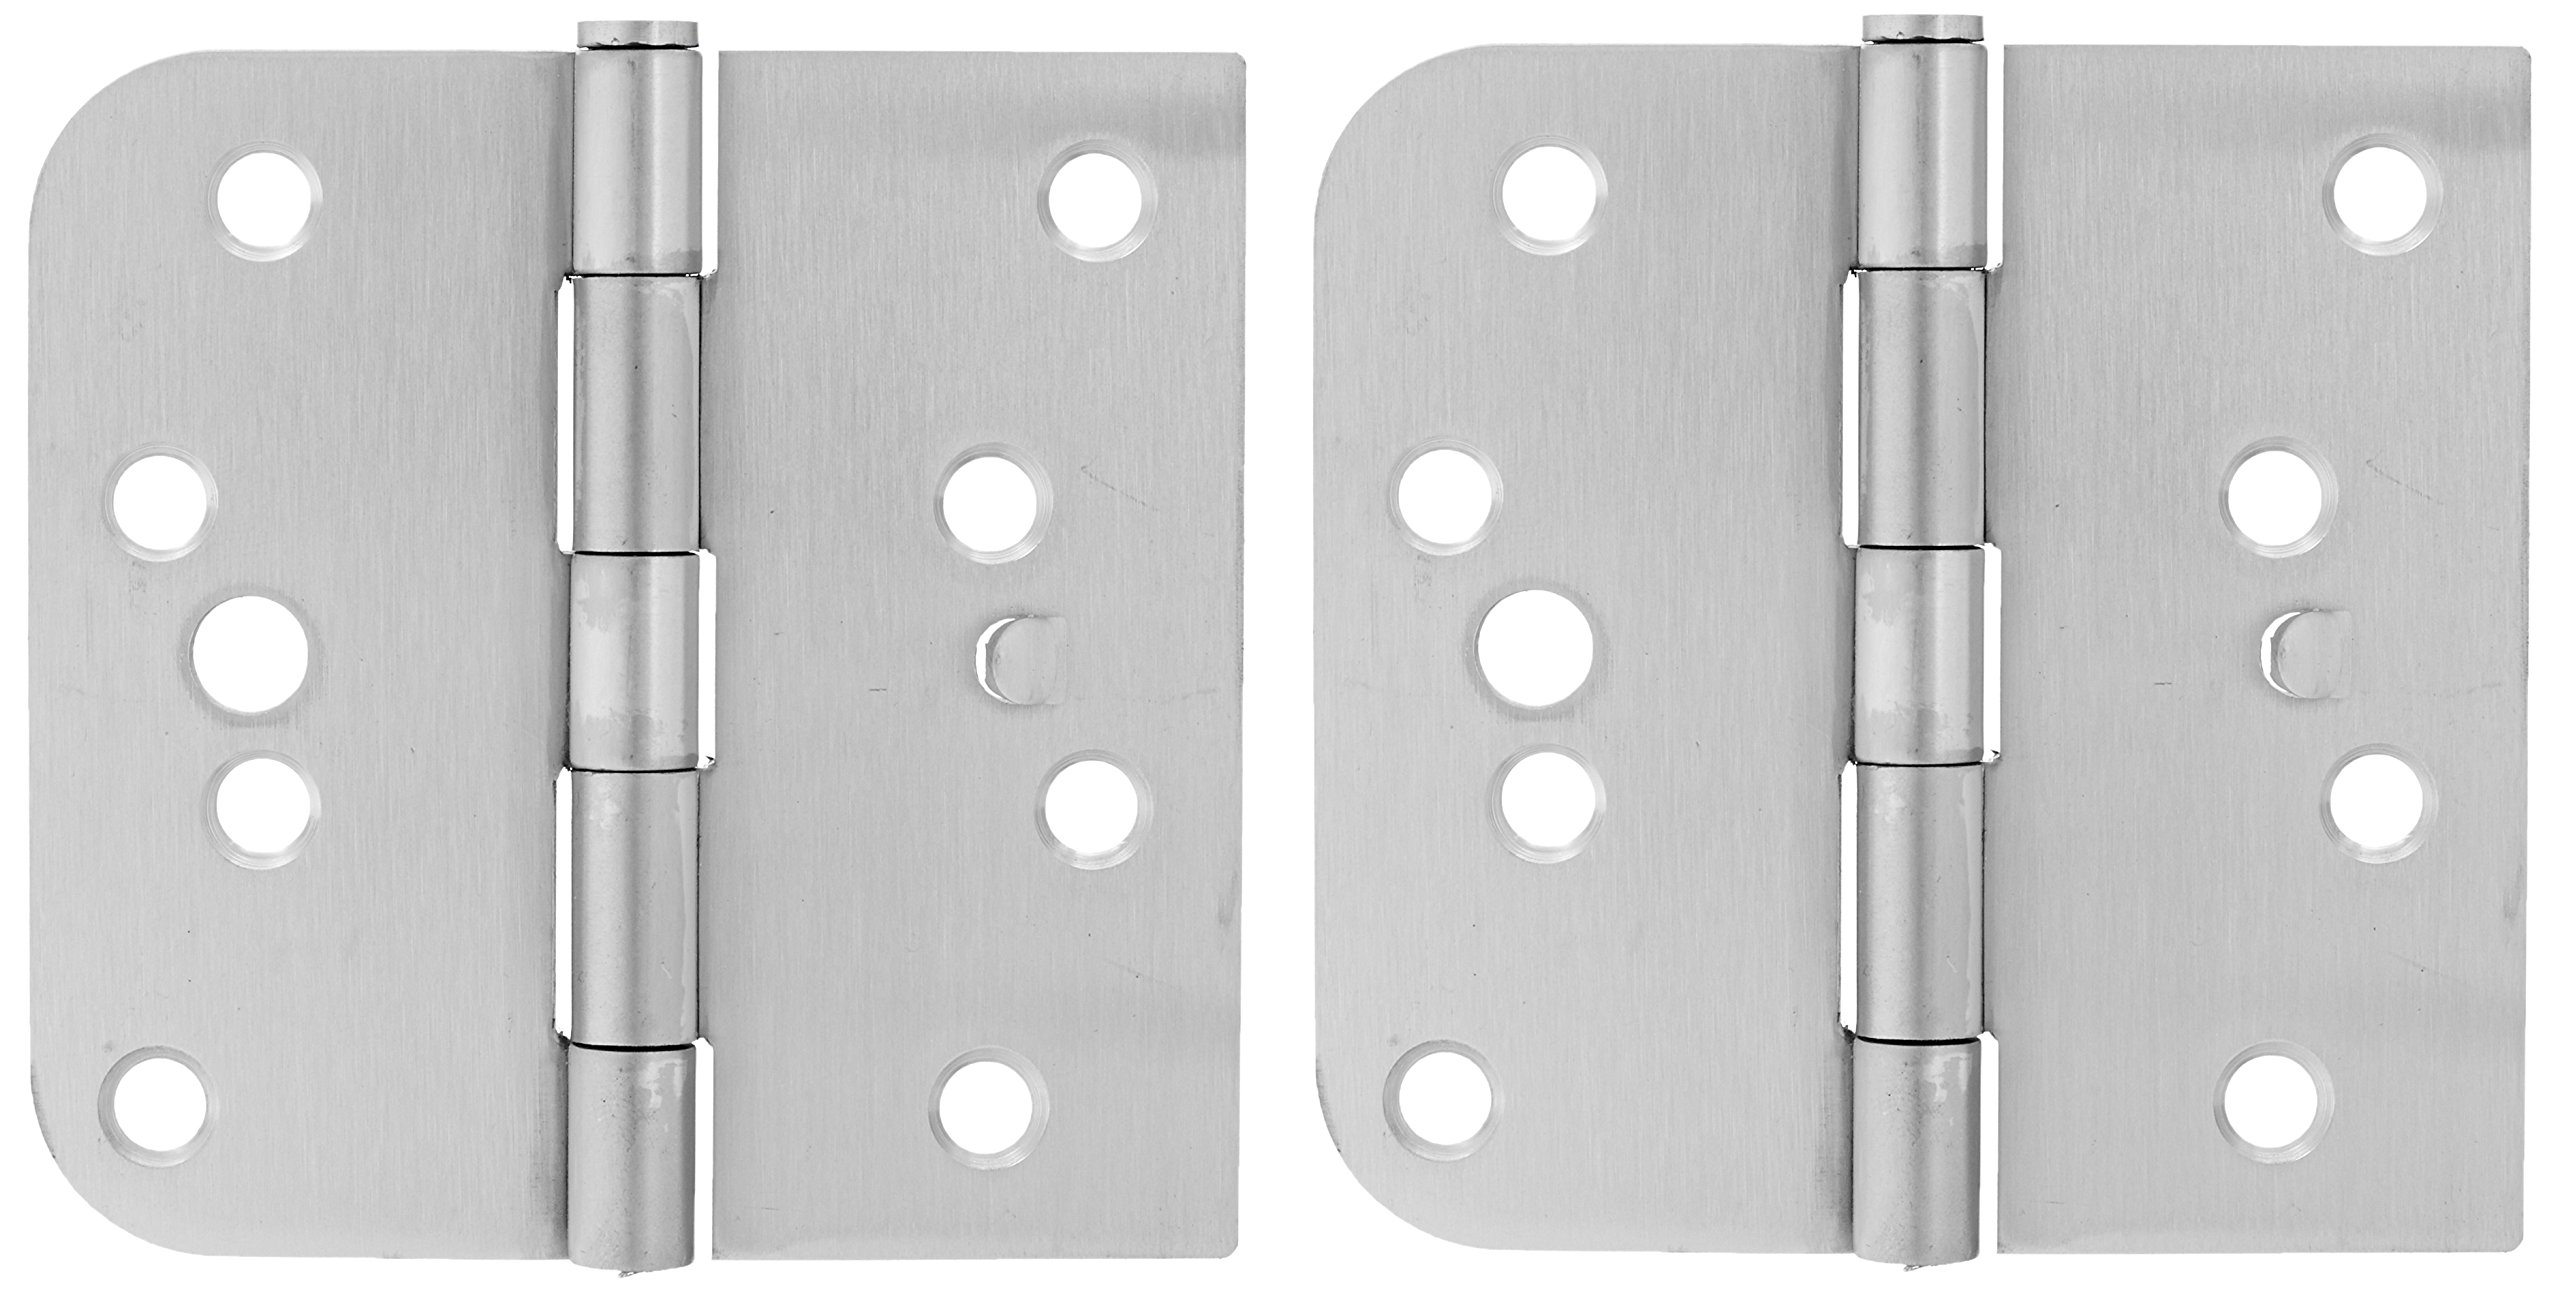 Deltana SS44058TA32D-LH Stainless Steel 4-Inch x 4-Inch x 5/8-Inch Square Hinge